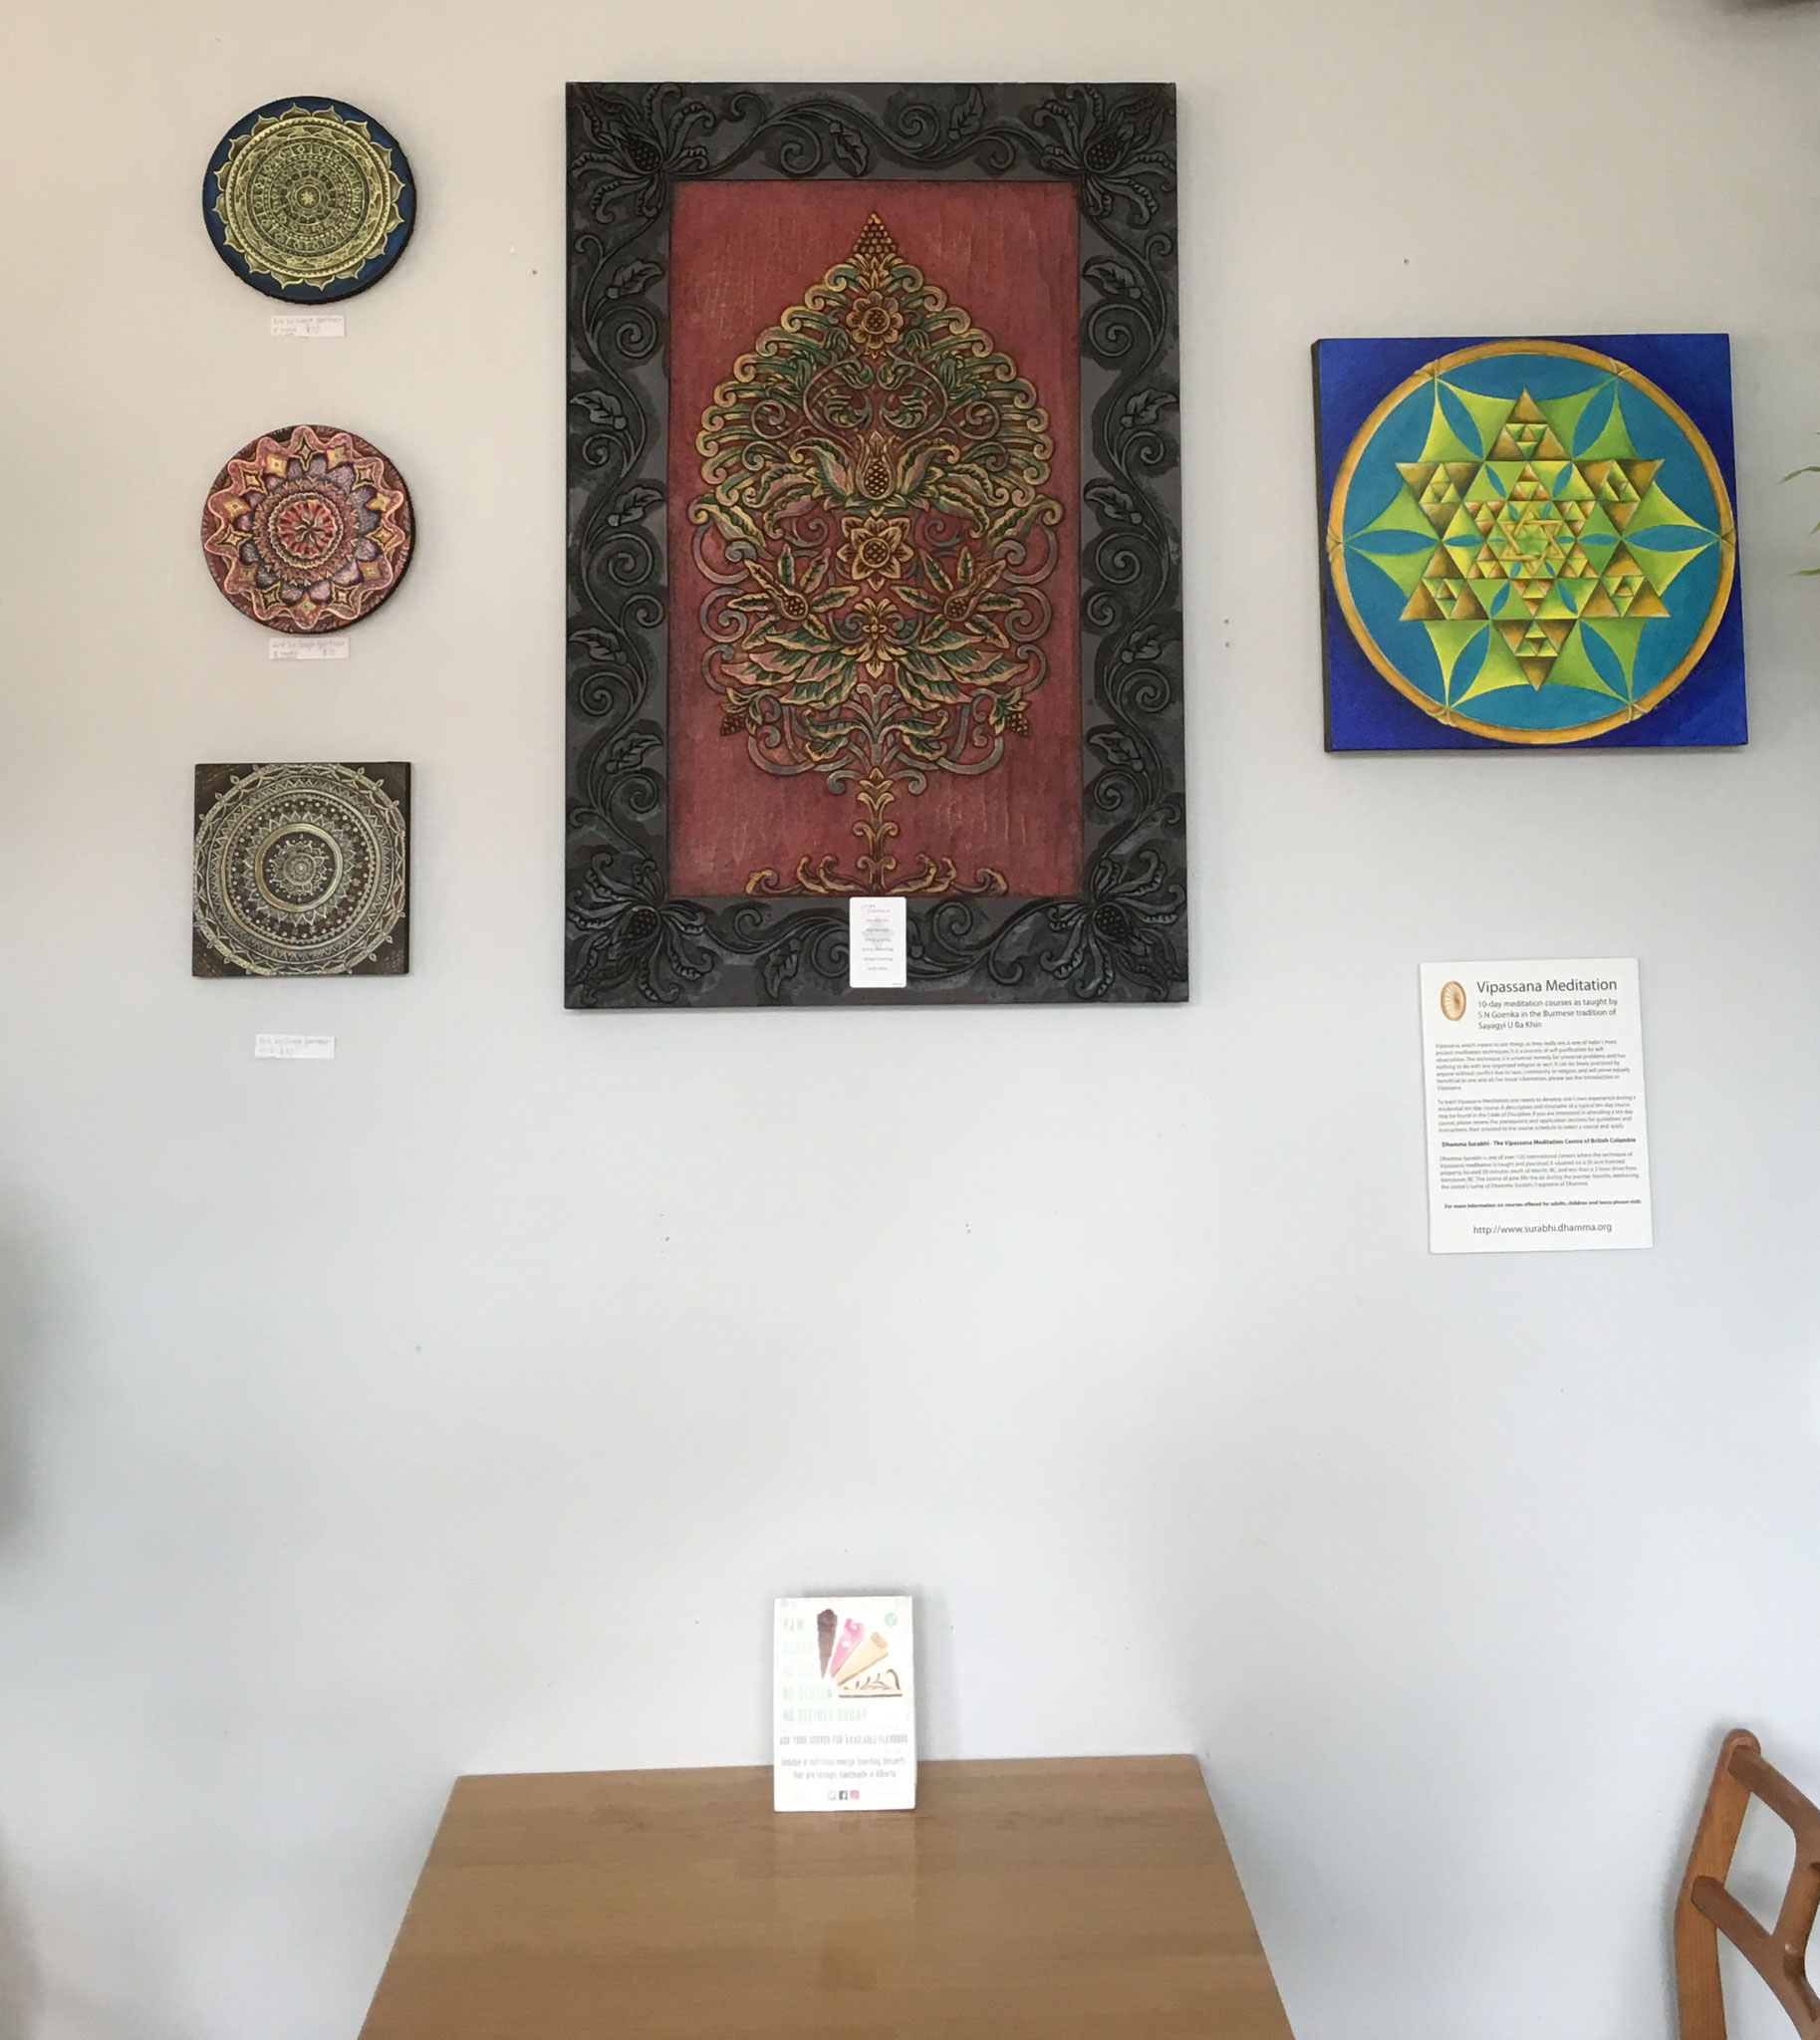 July 10/2017 to Aug.17/17 at the Lotus Seed Restaurant in Vancouver, B.C. (2 sold)